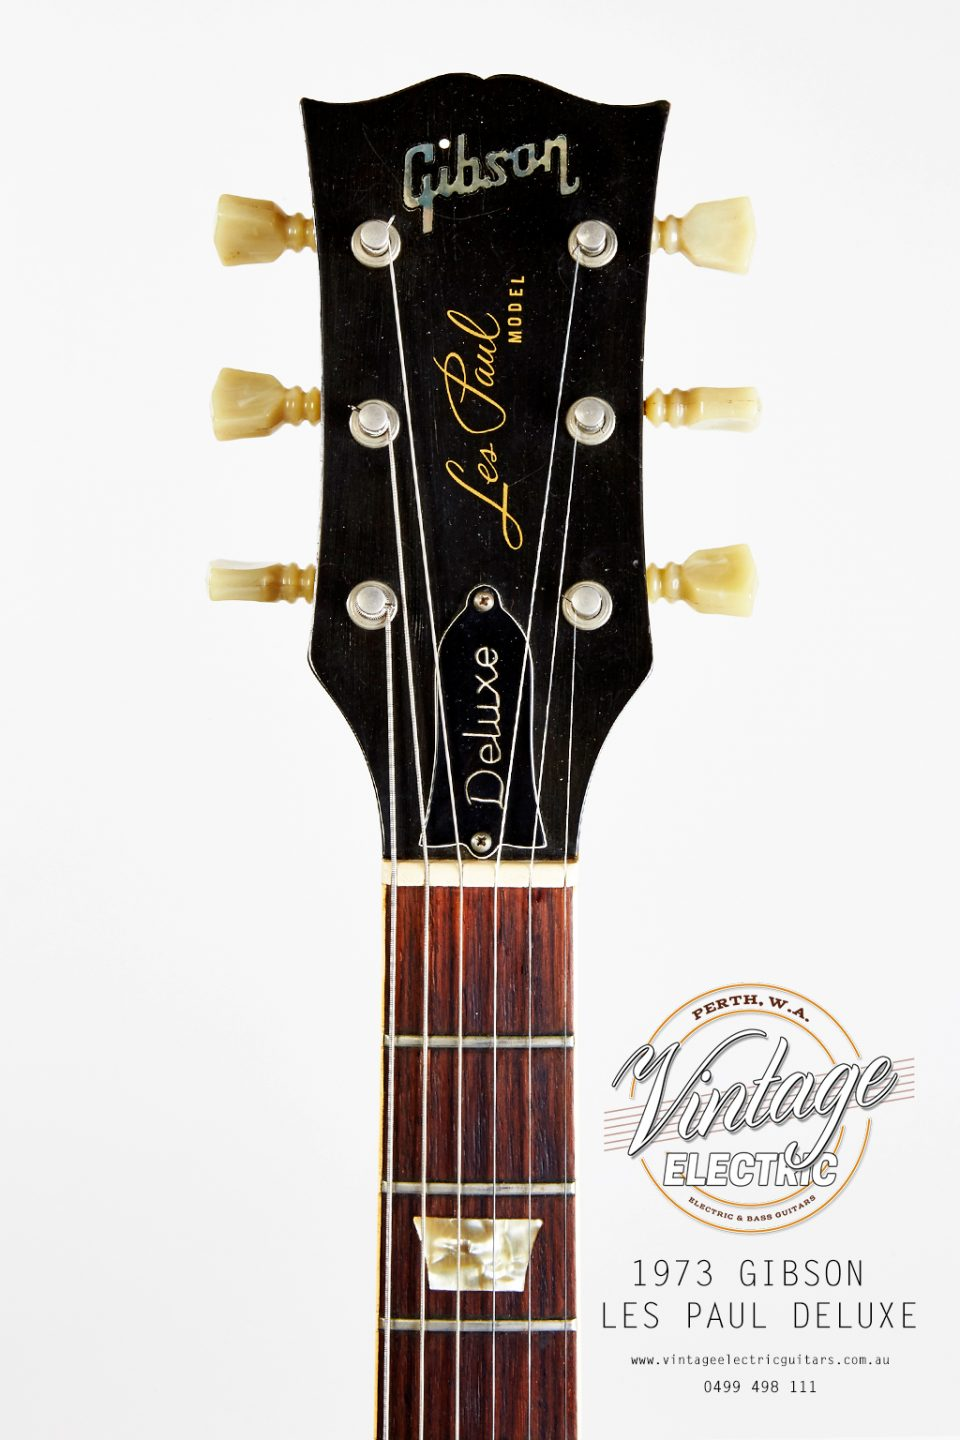 1973 Gibson Les Paul Goldtop Deluxe Headstock